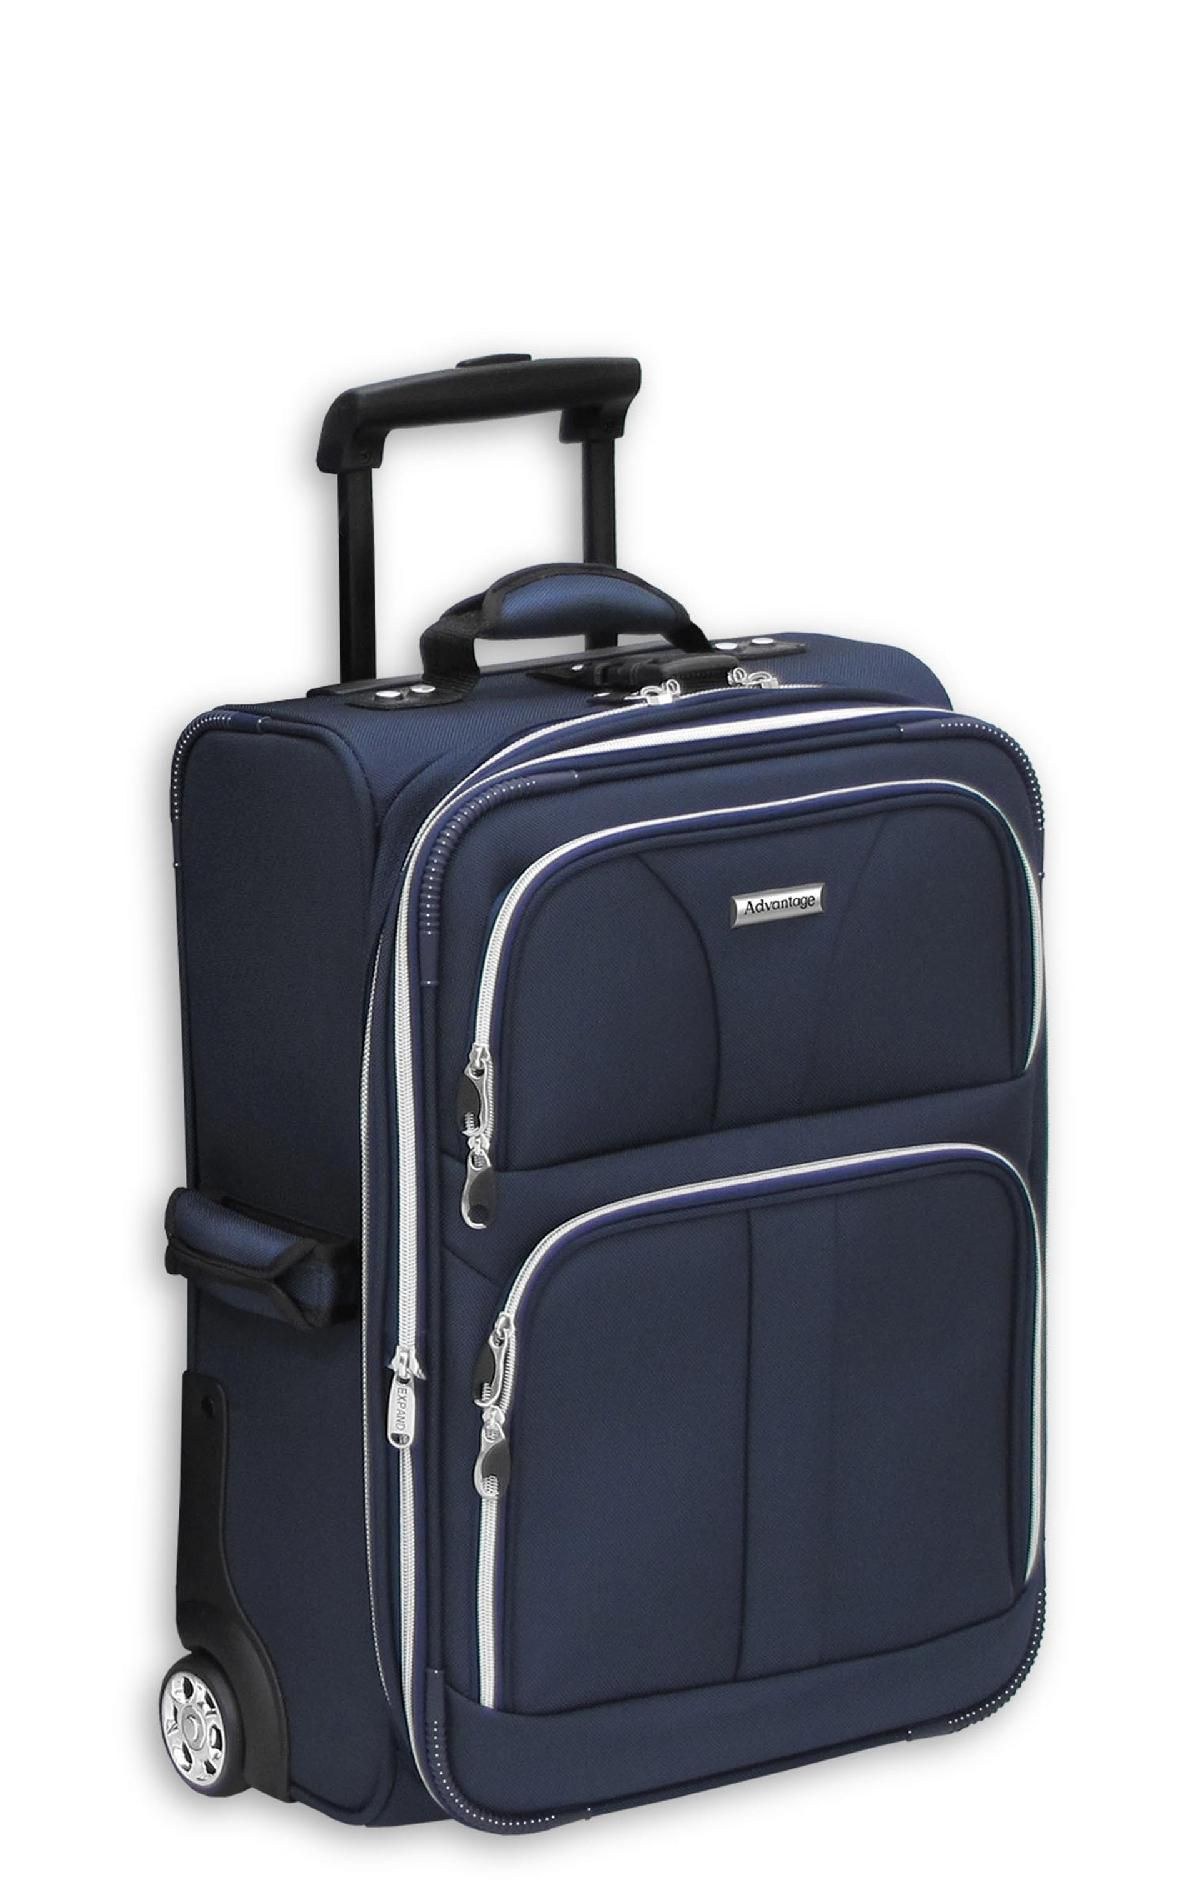 Leisure Luggage 21in Upright Advantage Silver Lites - Navy